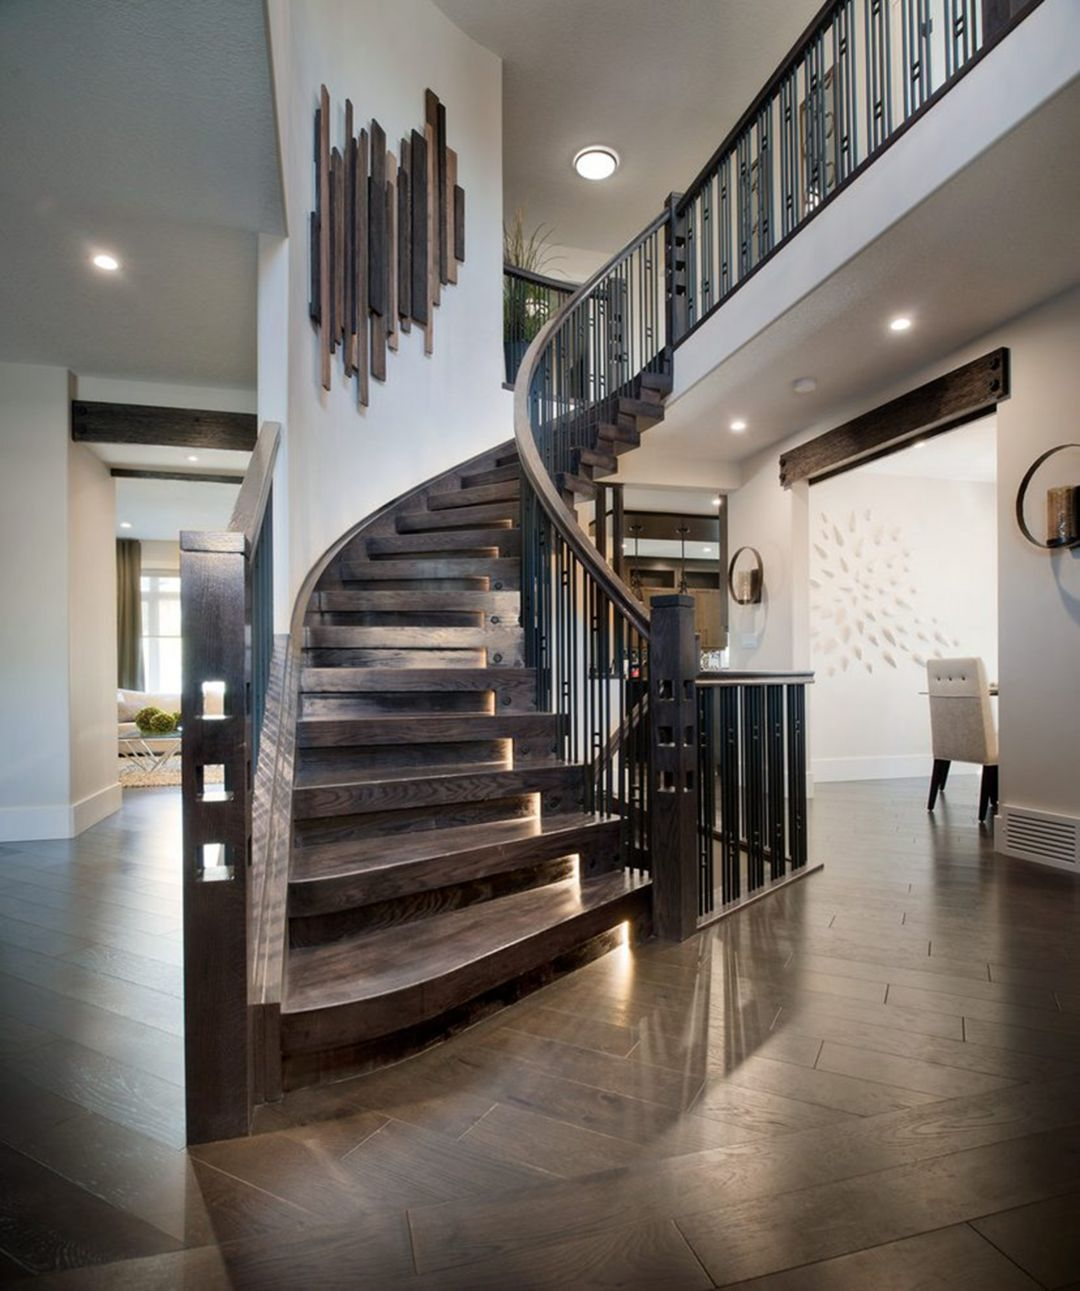 20 Beautiful Stairs Design Ideas To Add Enchanting ... on Creative Staircase Wall Decorating Ideas  id=30974